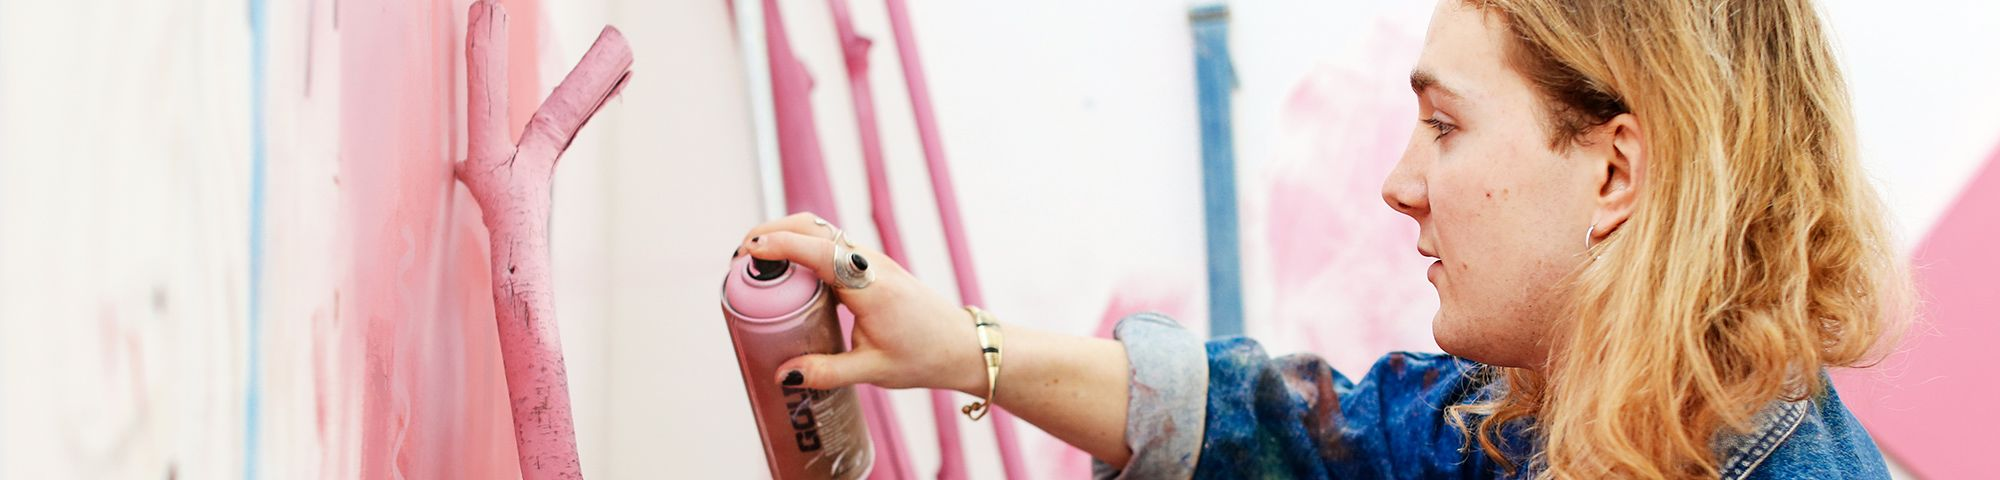 Student using pink spray paint can